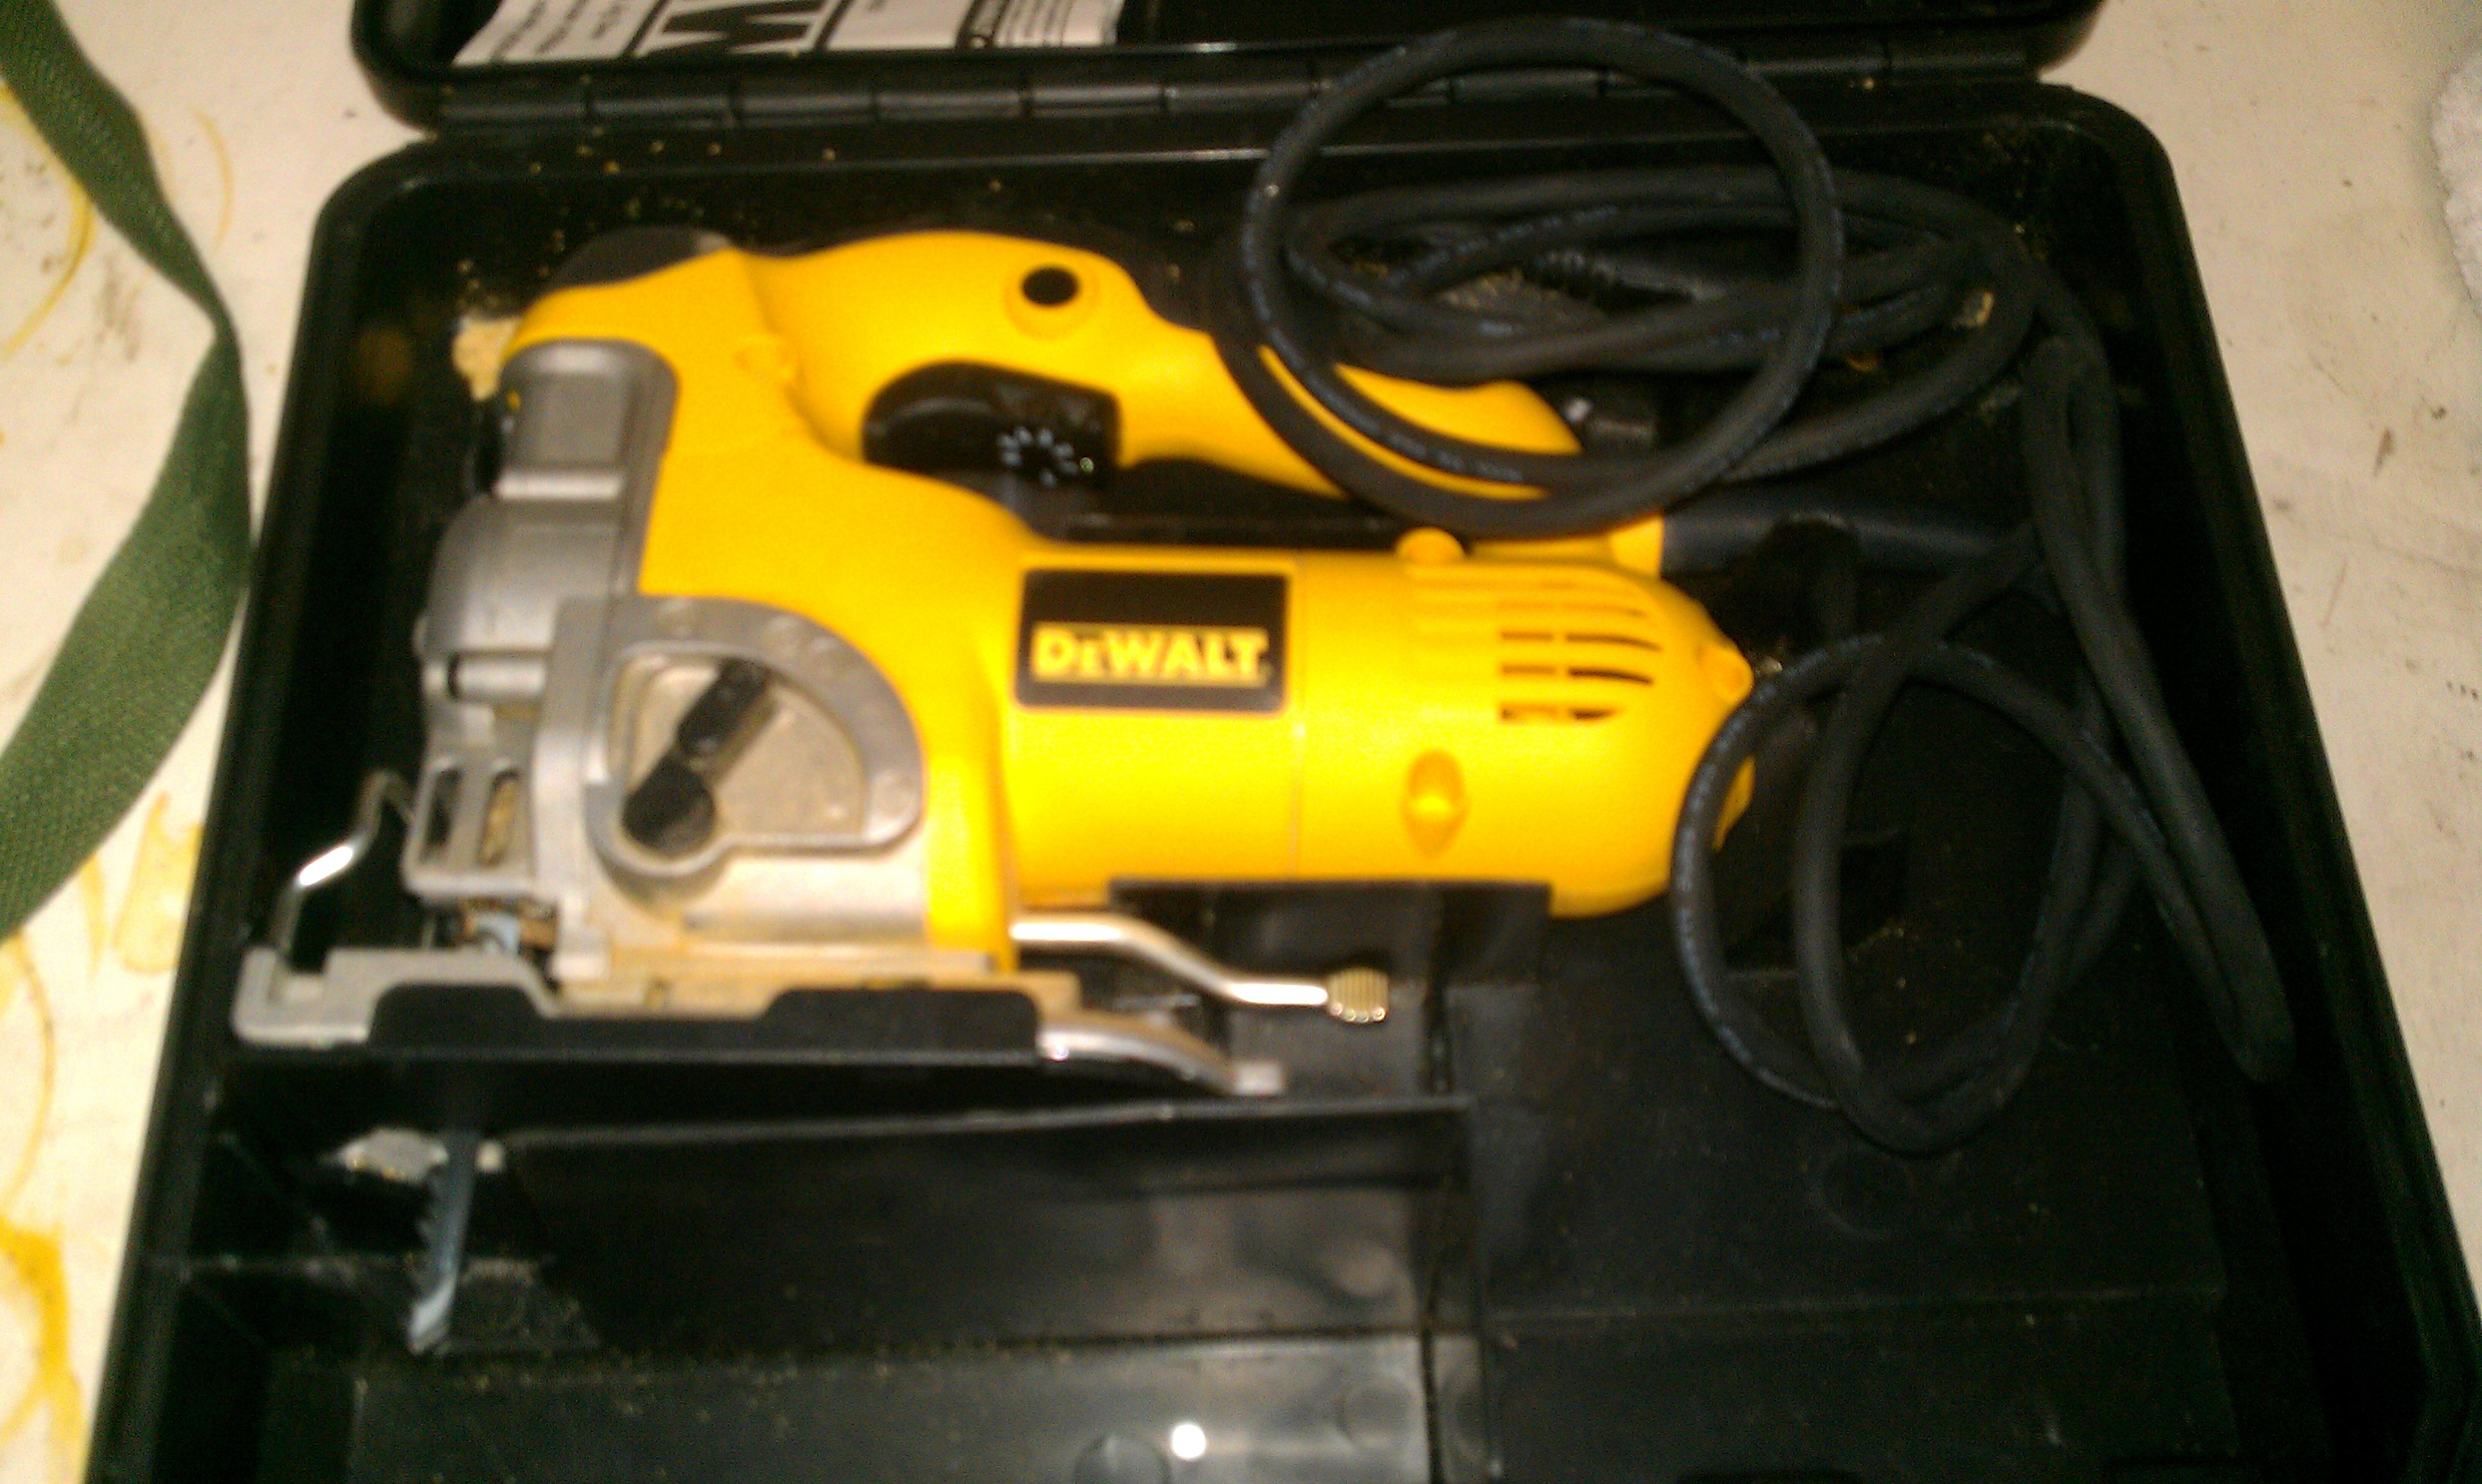 Loanablesdewalt jigsaw like new located in austin tx dewalt jigsaw like new rental austin tx greentooth Choice Image